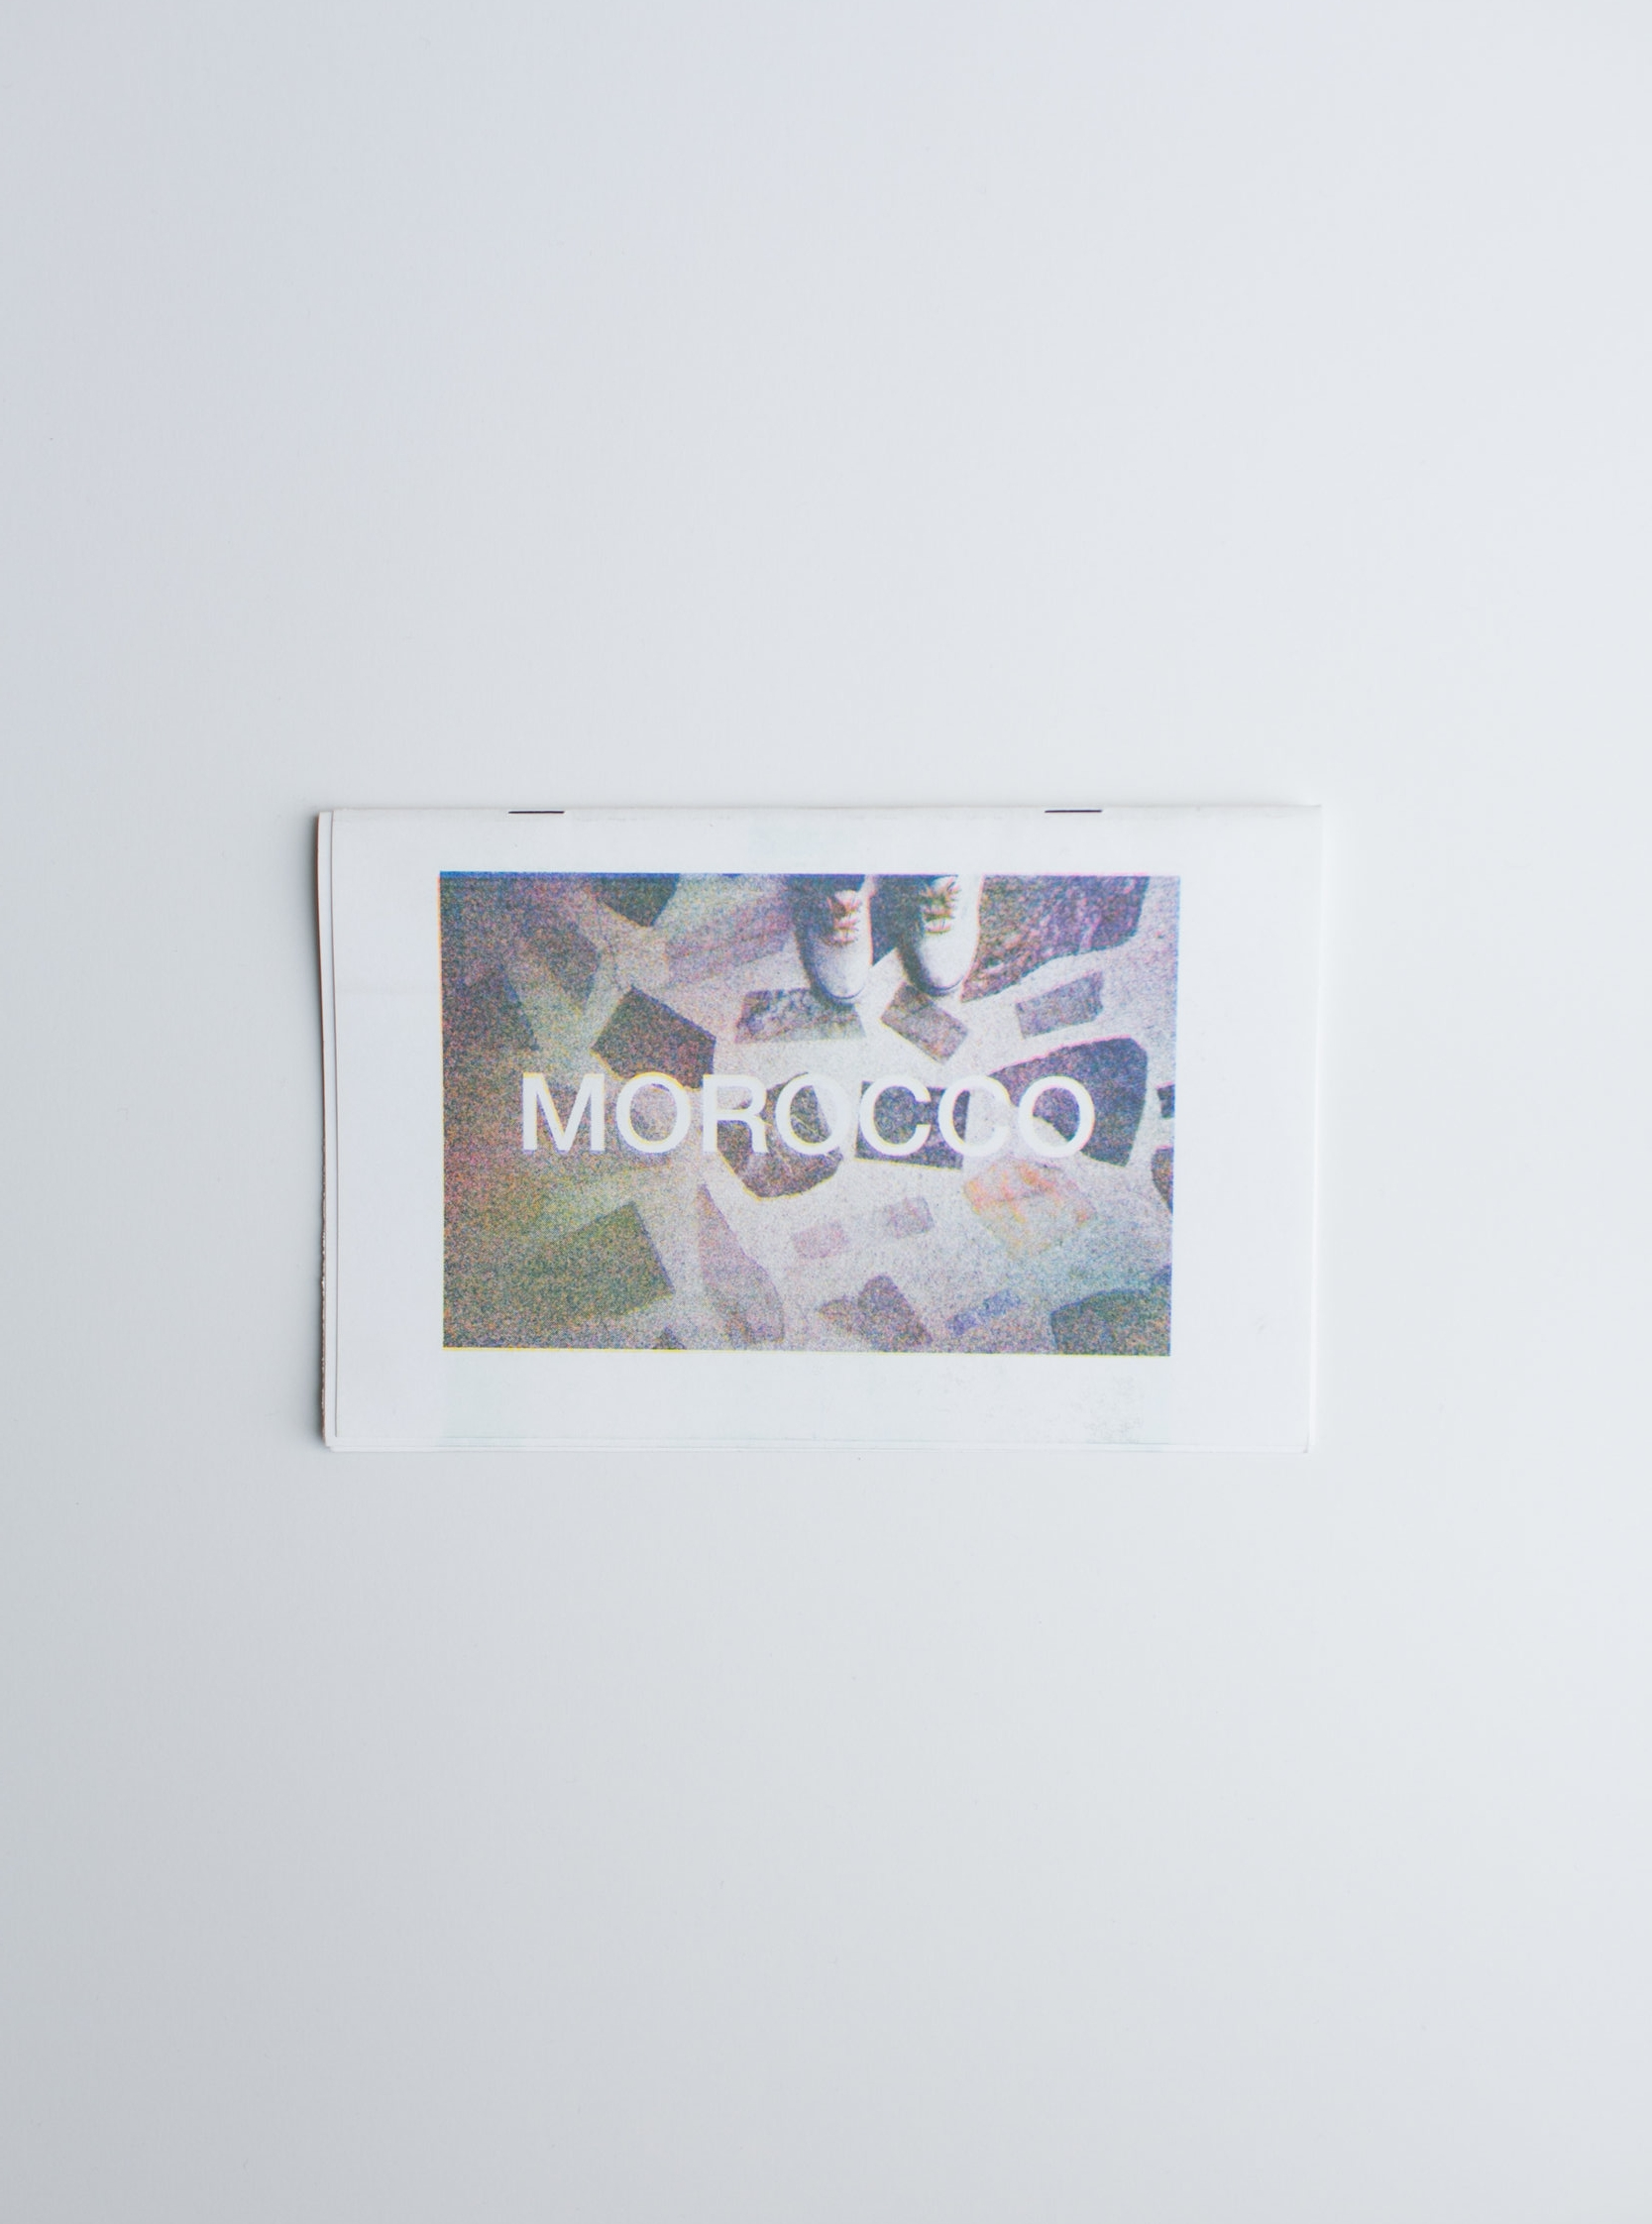 """Morocco Photo Zine Printed on Risograph 8.5"""" x 5.5"""", 10 pages"""